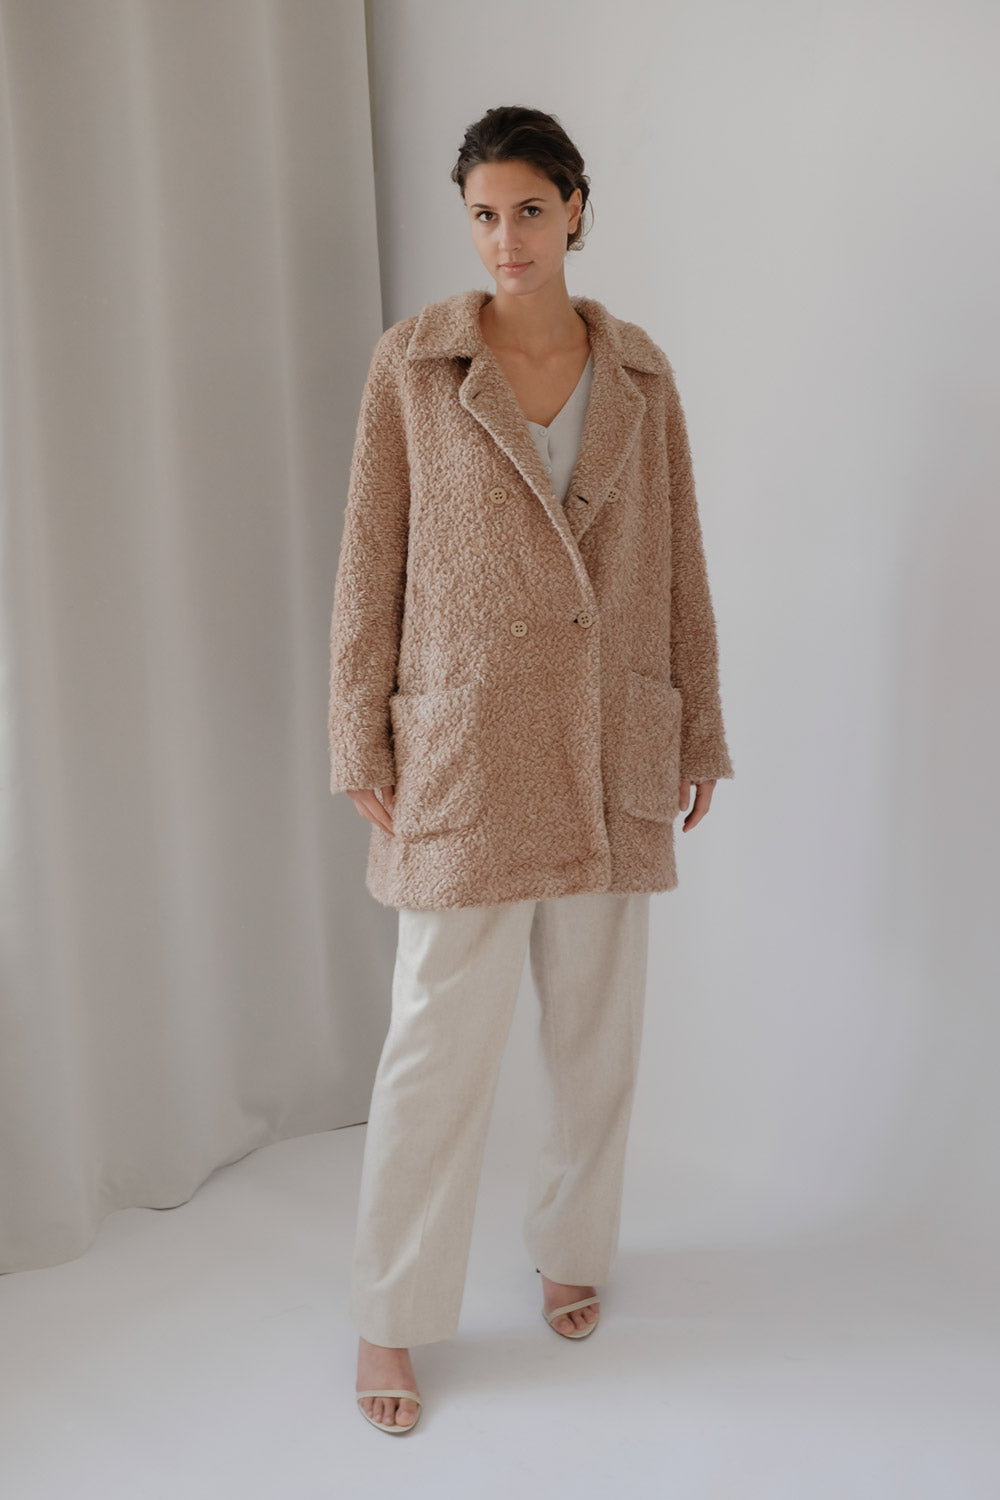 0017_VINTAGE OVERSIZED CAMEL TEDDY COAT